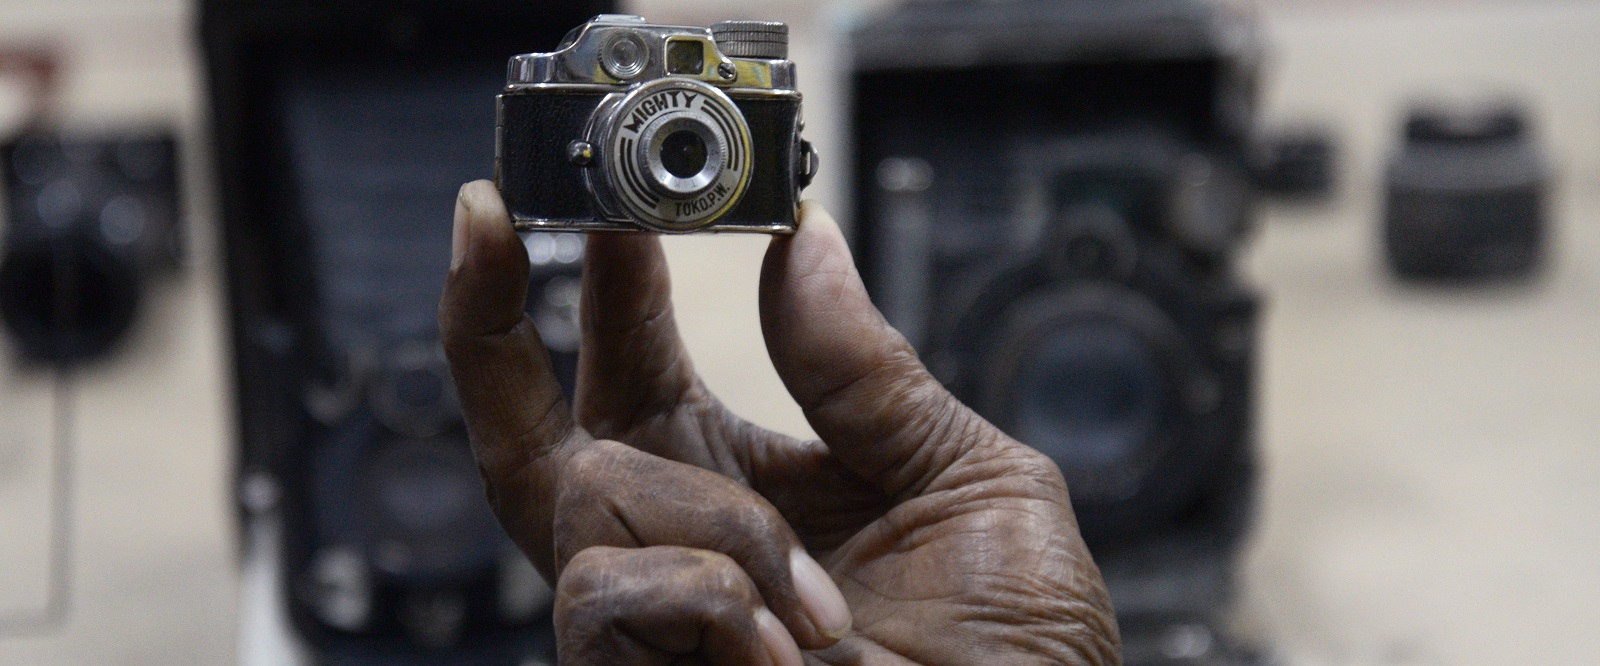 Miniature spy camera from World War II era (Photo by Saikat Paul/LightRocket via Getty Images)